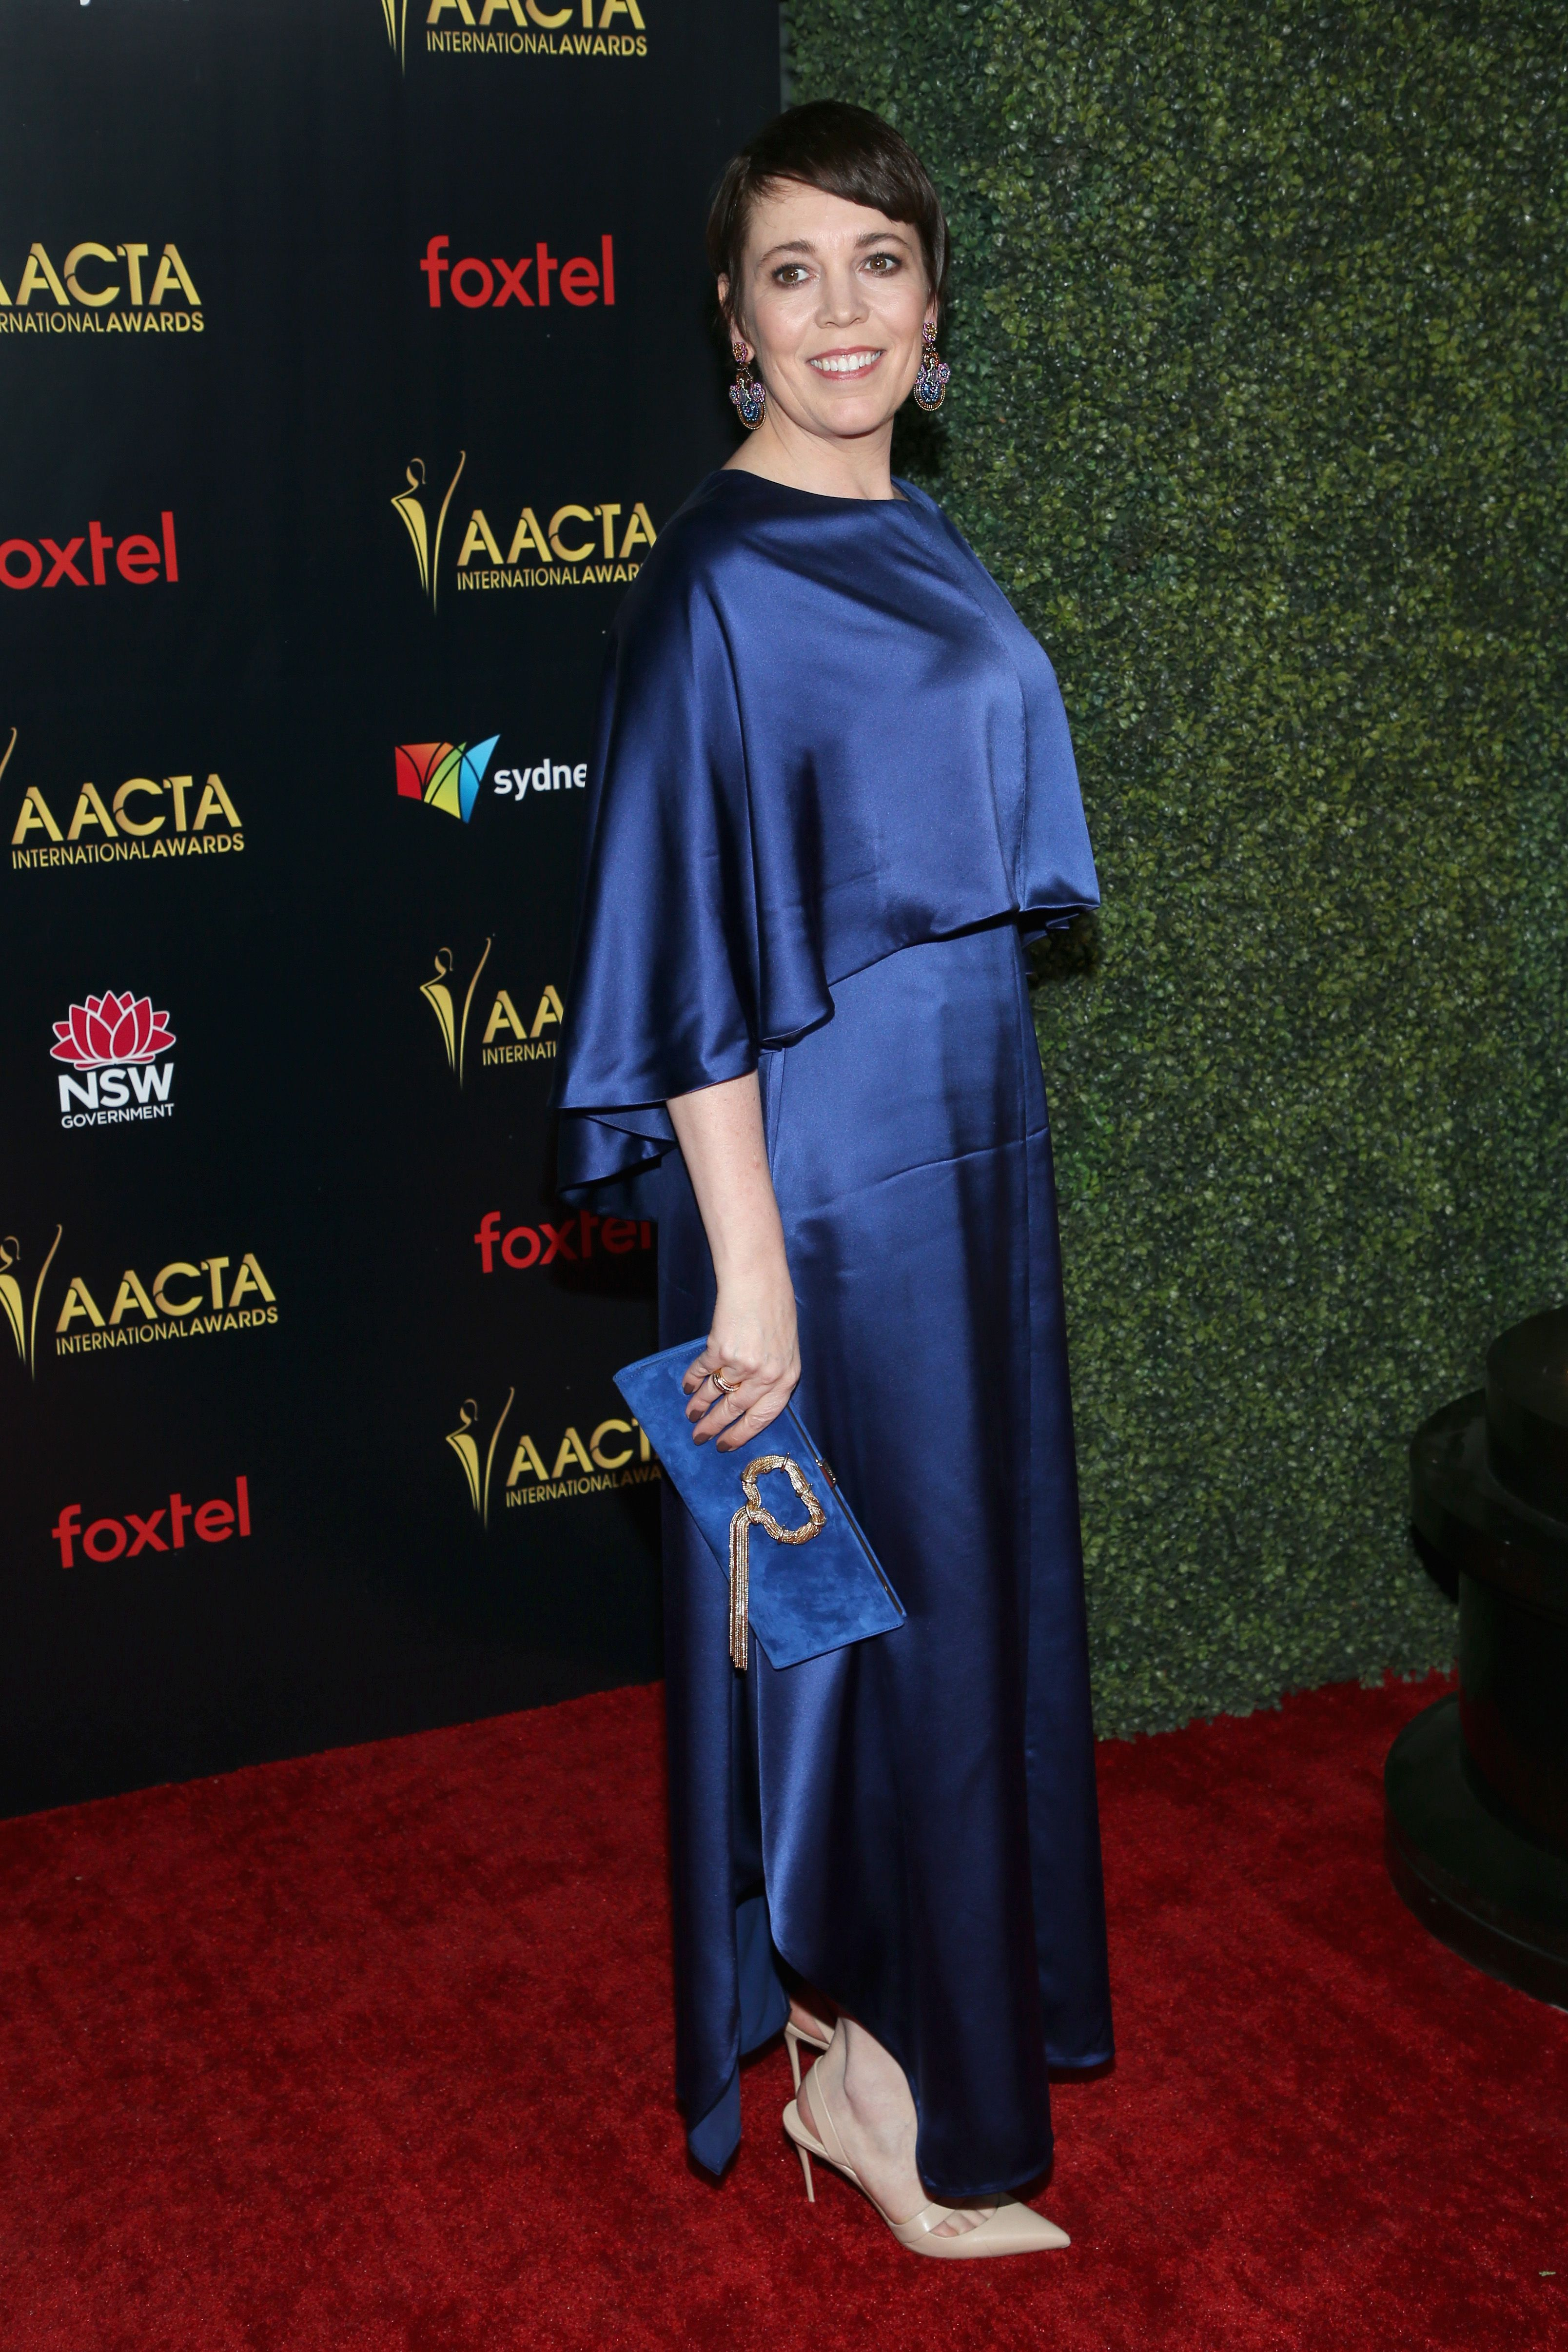 The British actress looked sophisticated in a silk gown by Varana , statement earrings, and a blue suede clutch at the AACTA International Awards in L.A.